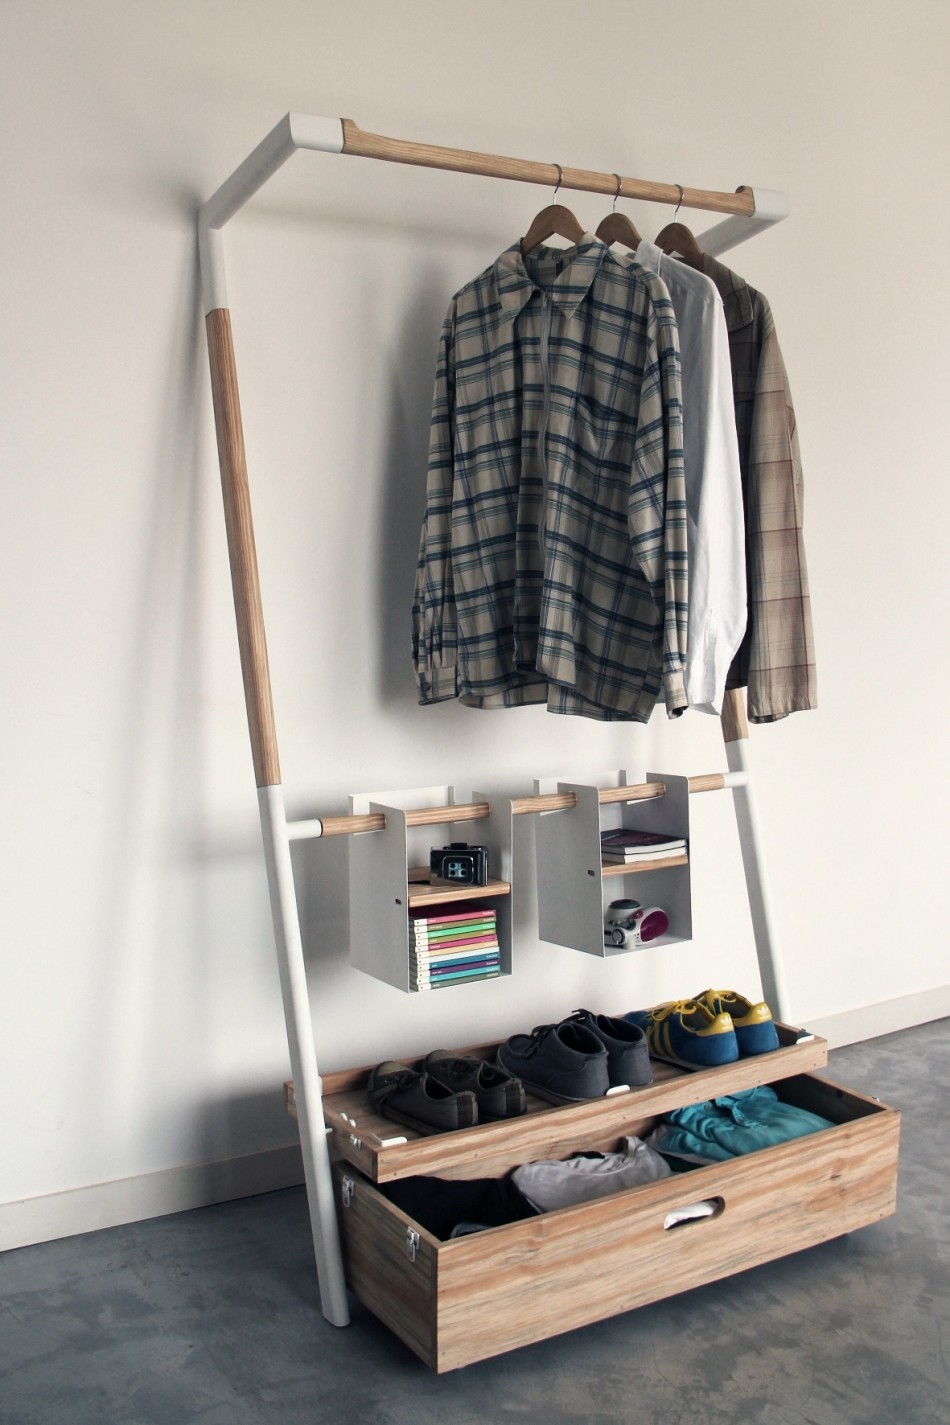 Practical Space Saving Storage: Arara Nômade